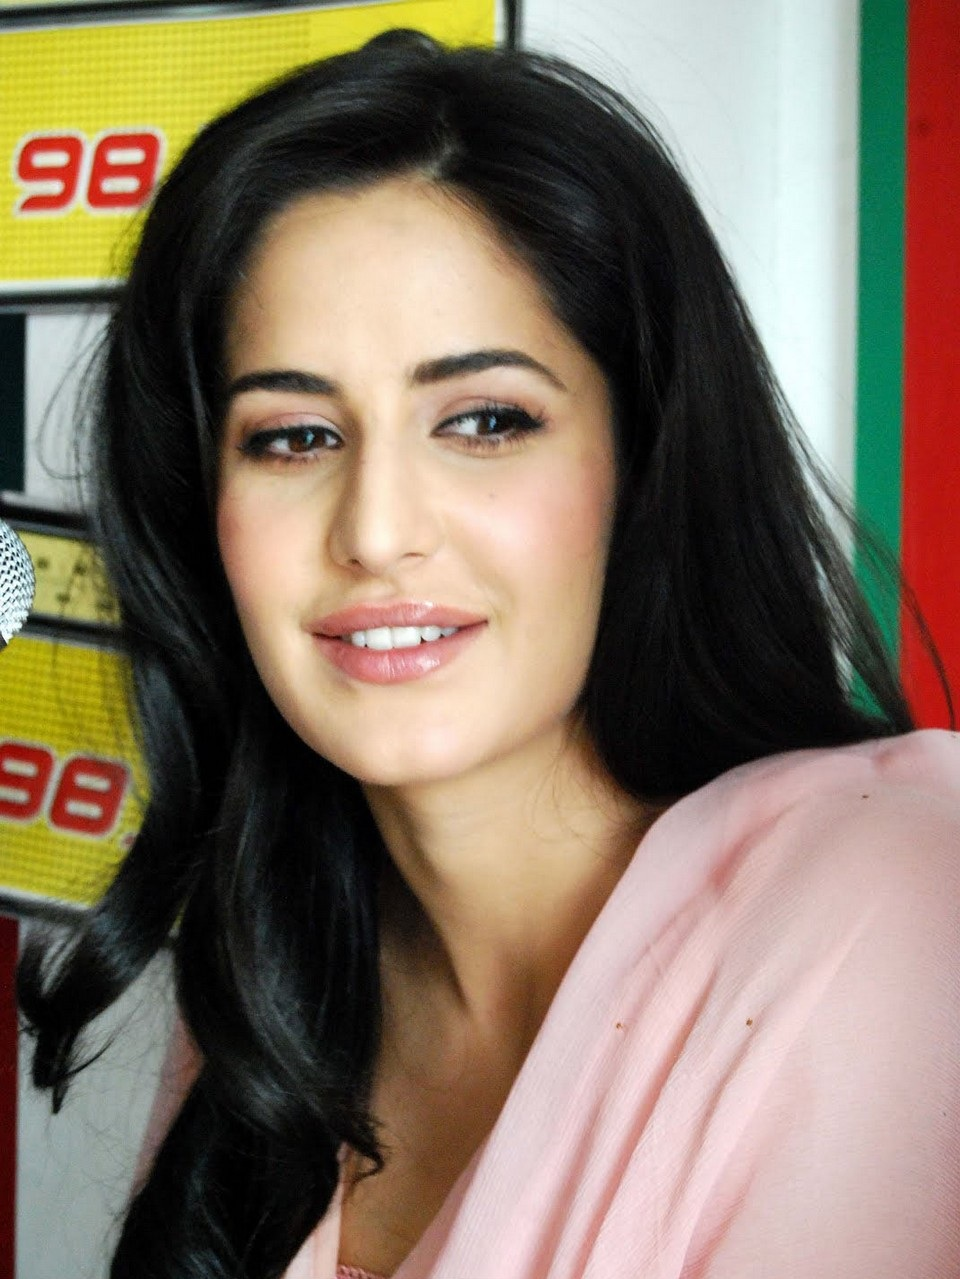 katrina kaif hd images - movieactressphoto.blogspot.in